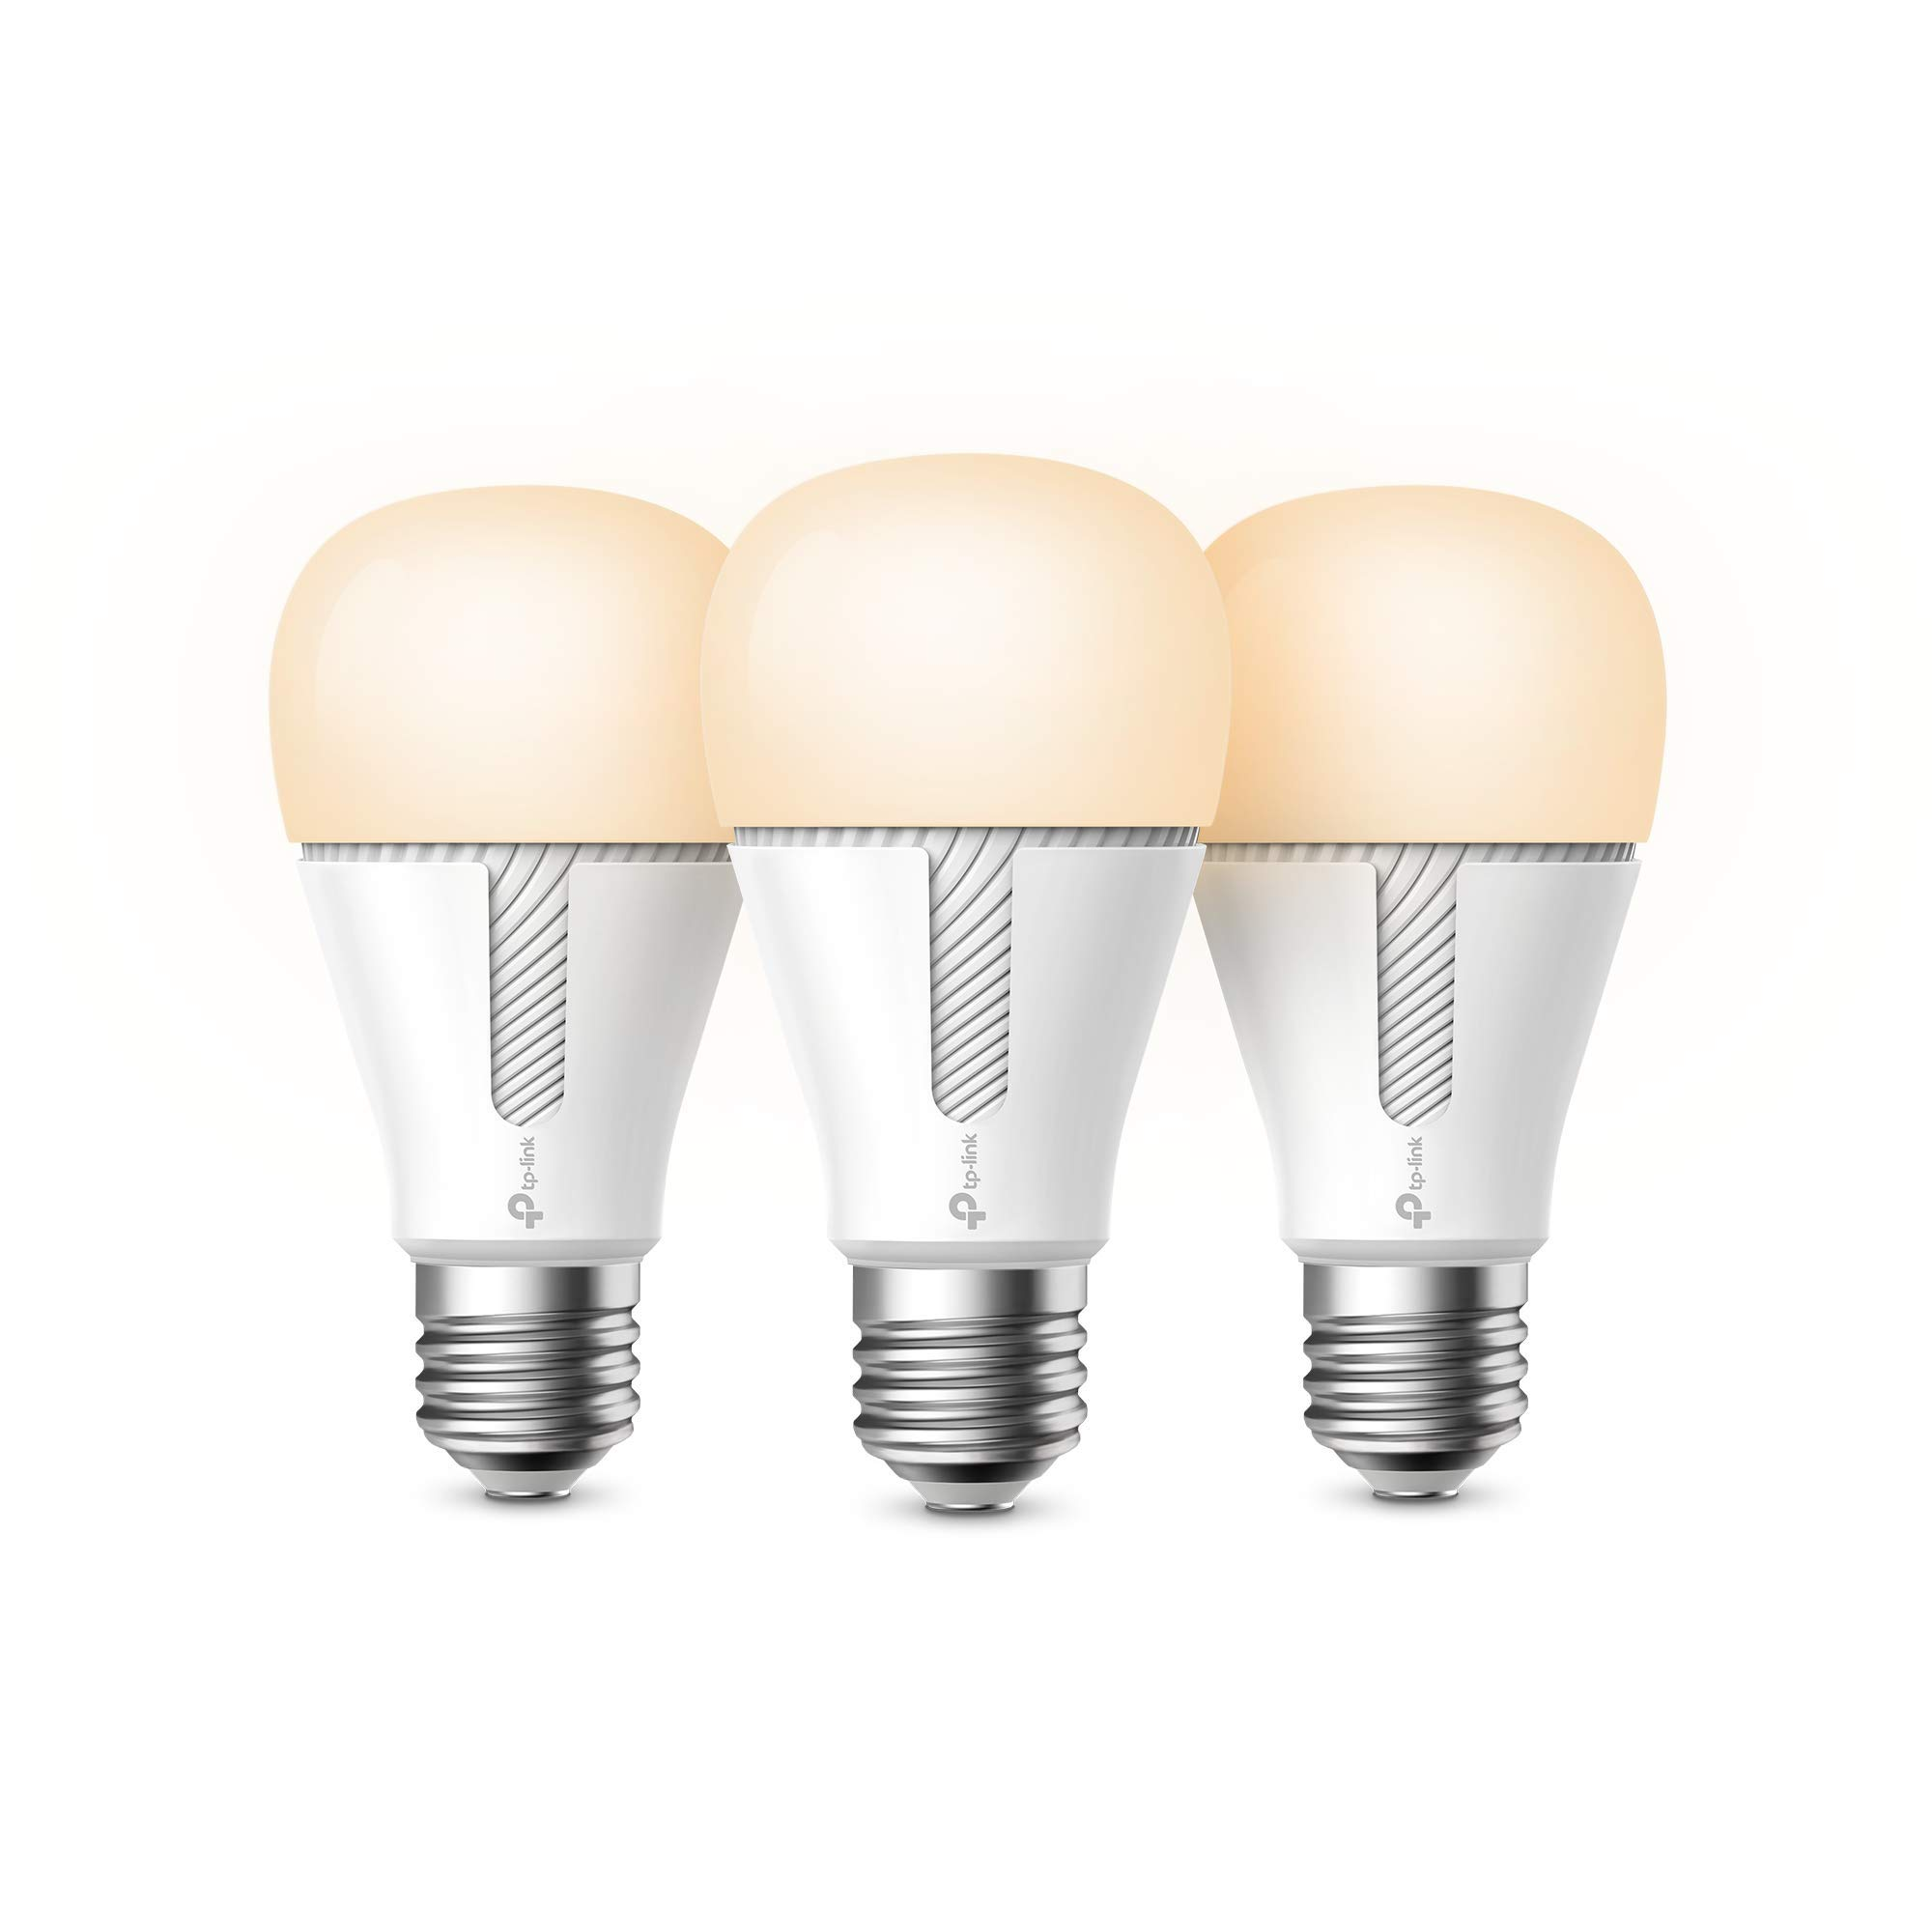 Kasa Smart WiFi Light Bulbs (3-pack), Dimmable by TP-Link - No Hub Required, Works with Alexa & Google (KL110P3)